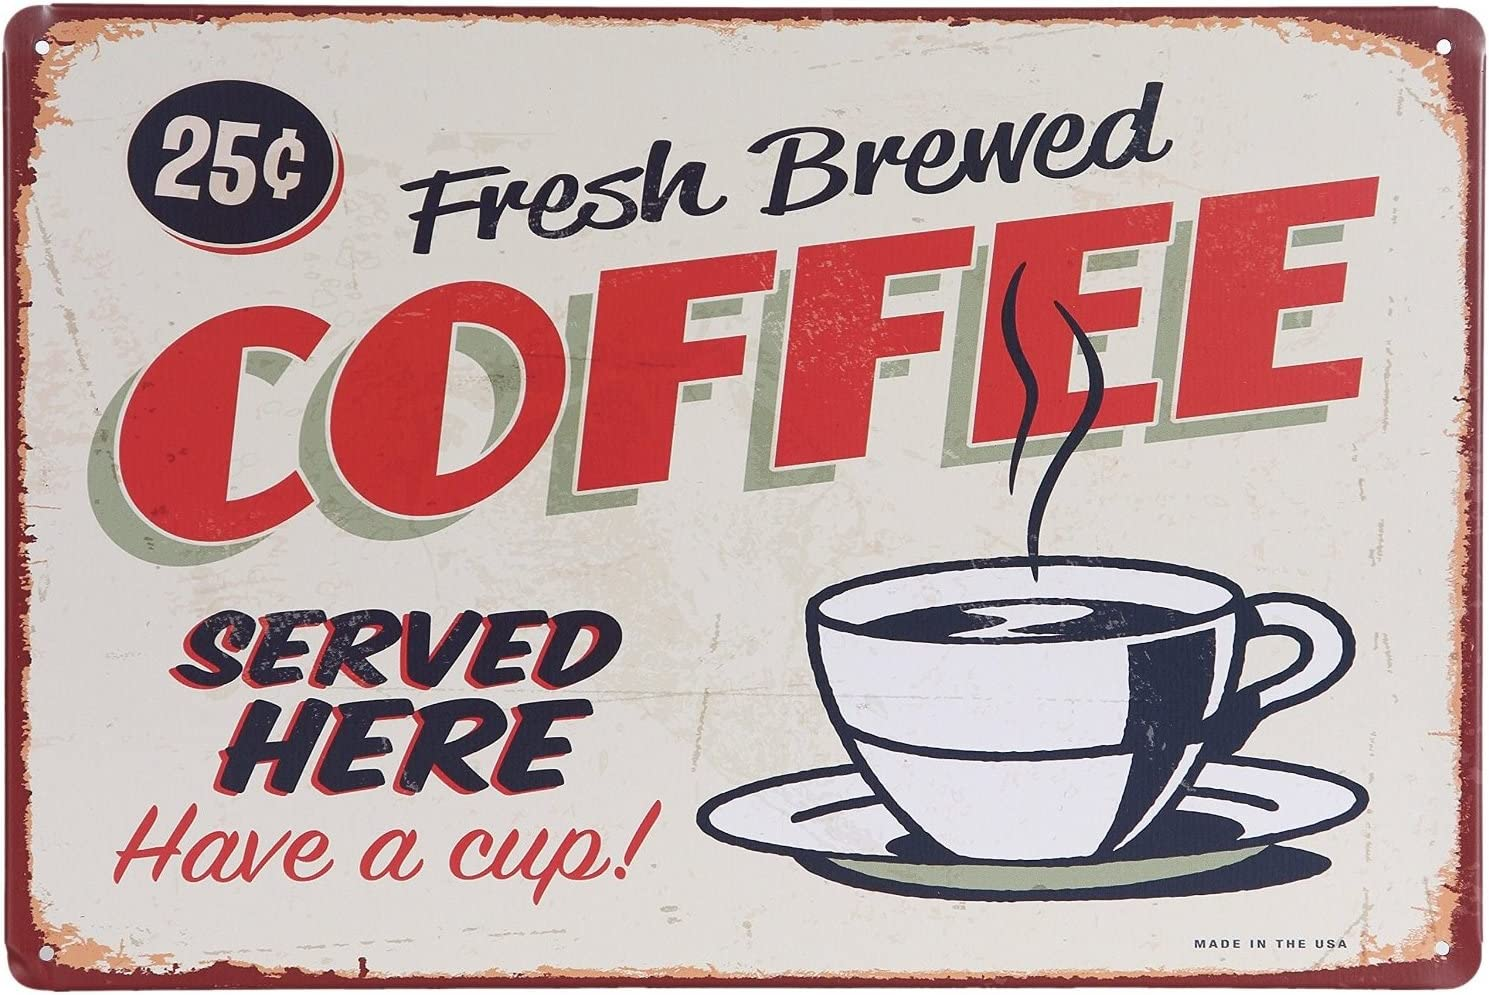 ERLOOD Fresh Brewed Coffee Served Here Retro Vintage Decor Metal Tin Signs 12 X 8